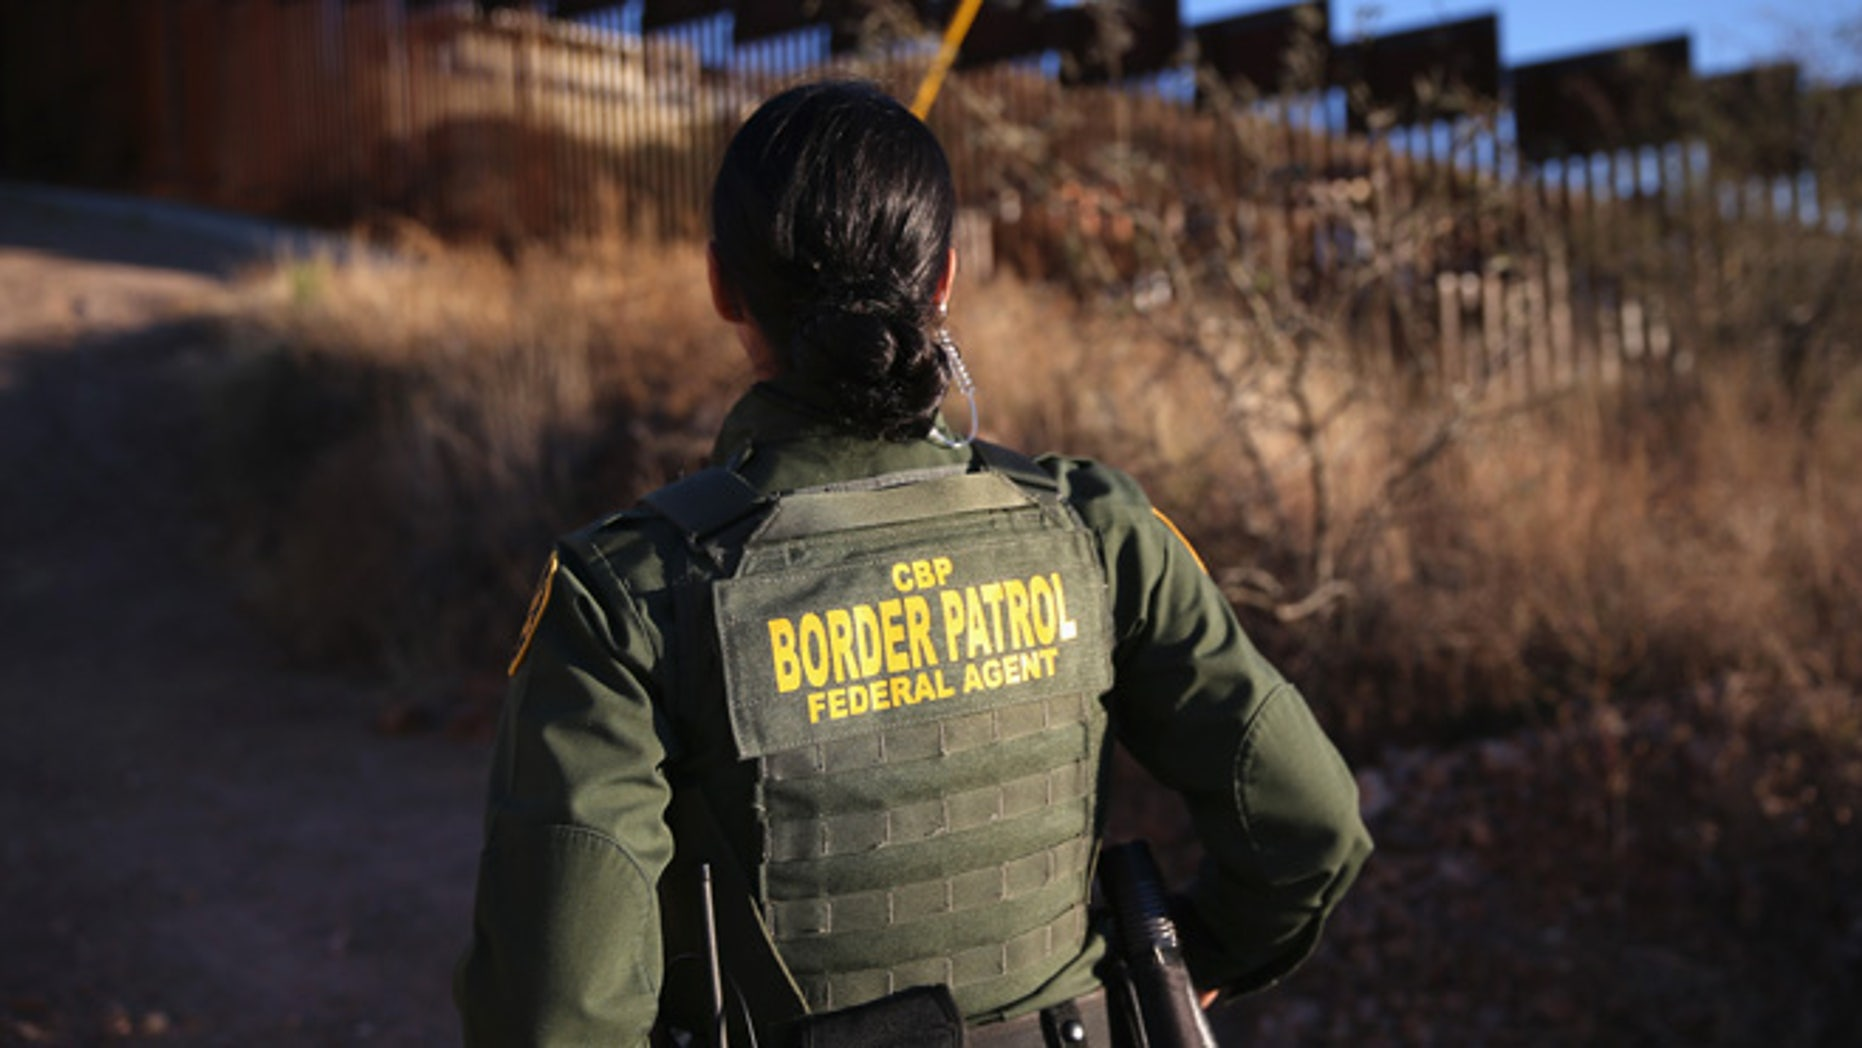 NOGALES, AZ - DECEMBER 09:  U.S. Border Patrol agent Nicole Ballistrea watches over the U.S.-Mexico border fence on December 9, 2014 in Nogales, Arizona. (Photo by John Moore/Getty Images)